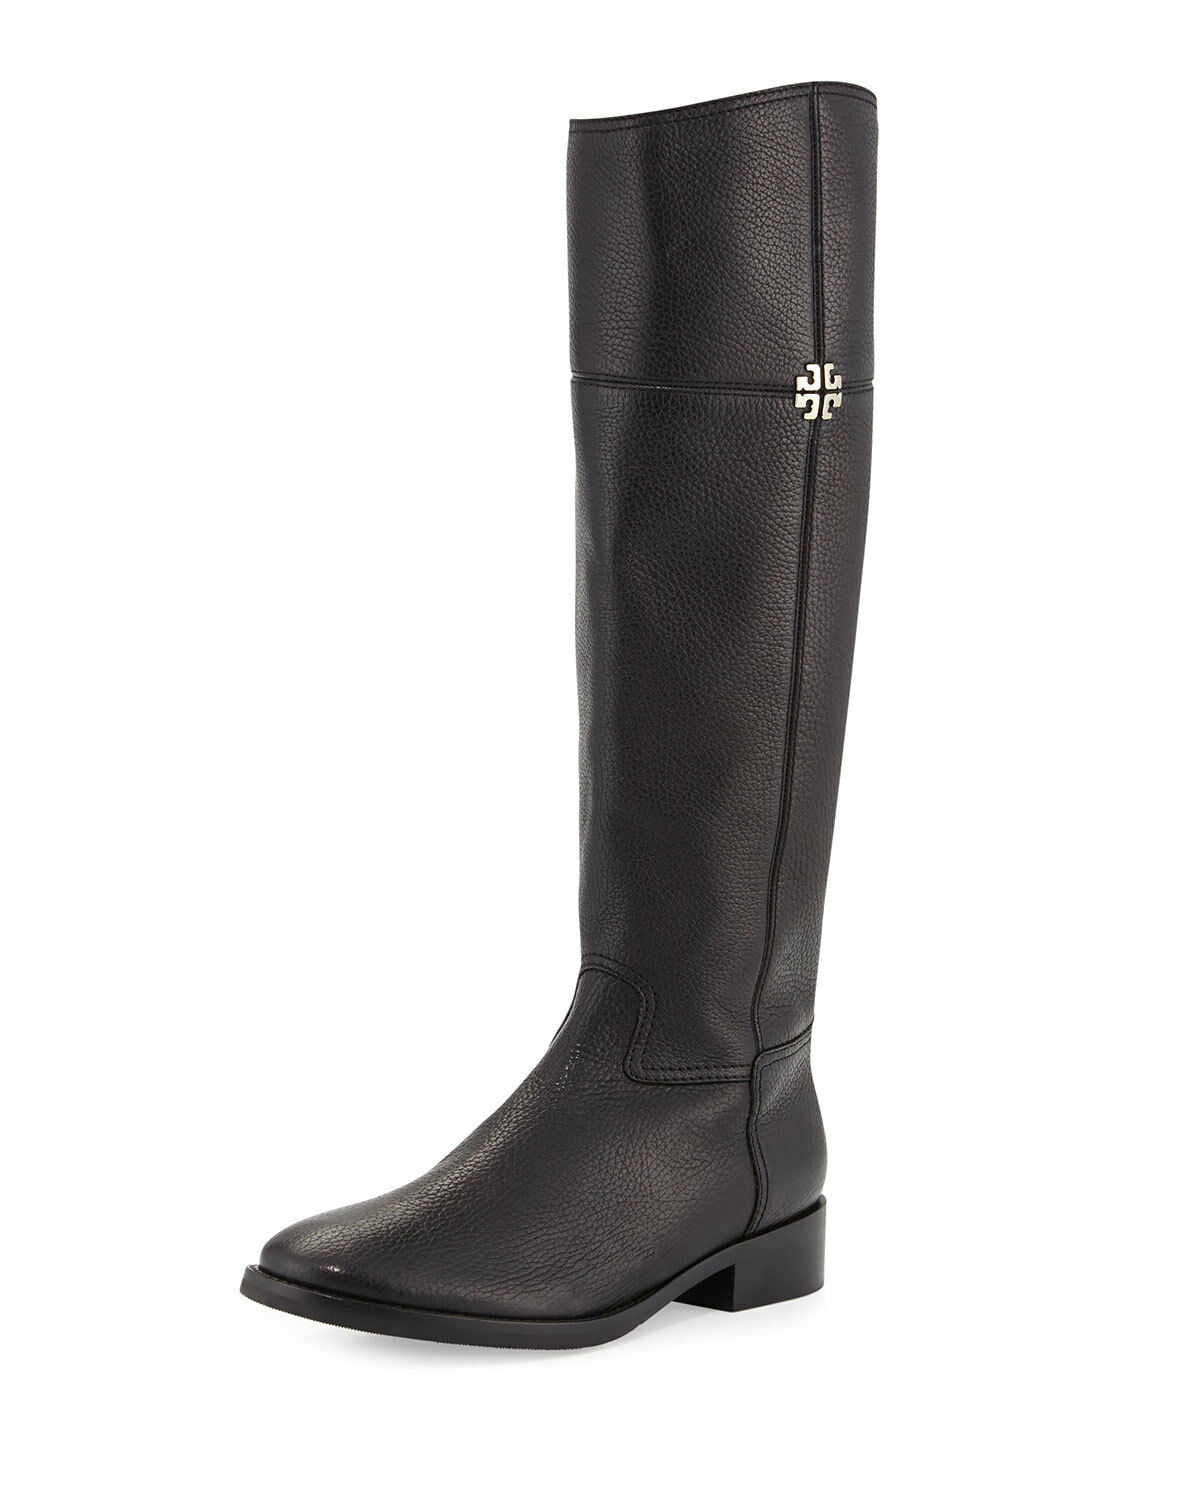 Tory Burch Women's Jolie Riding Boots Boots Riding Black Tumbled Leather 6383 Size 8 M fe32a2